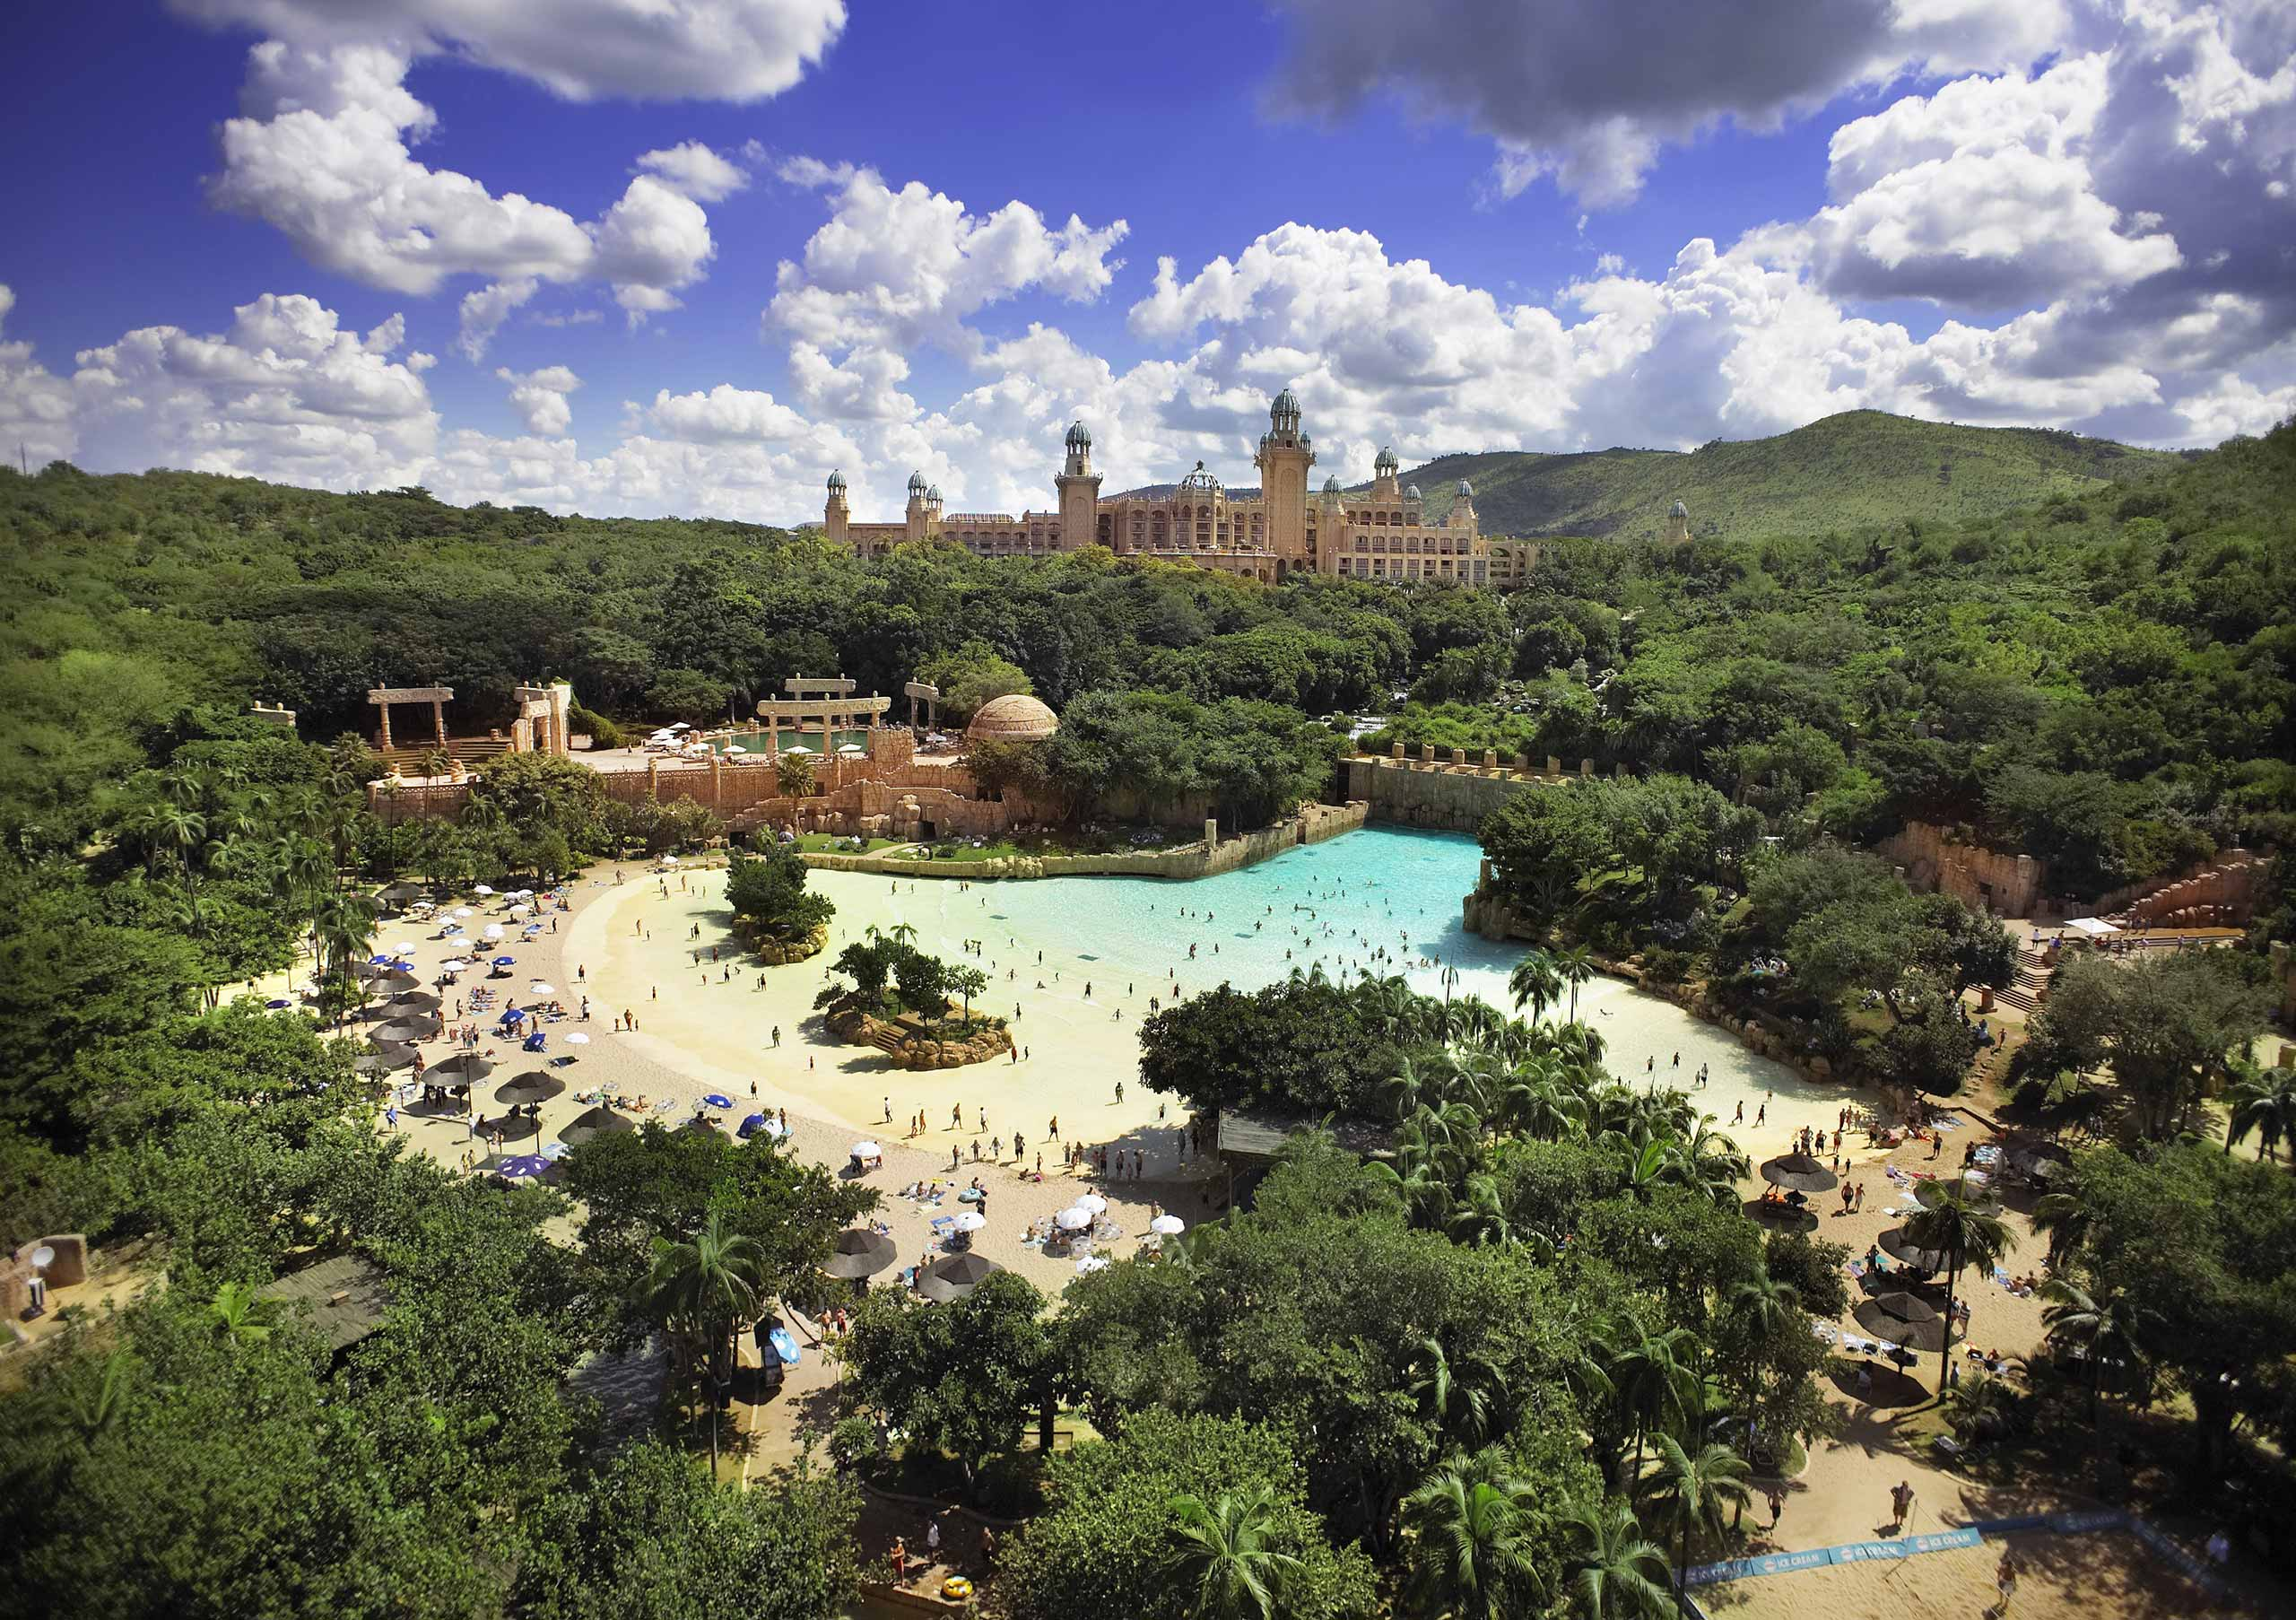 enkosi-africa-safari-sudafrica-sun_city-valley-of-waves-with-the-palace-in-the-background_